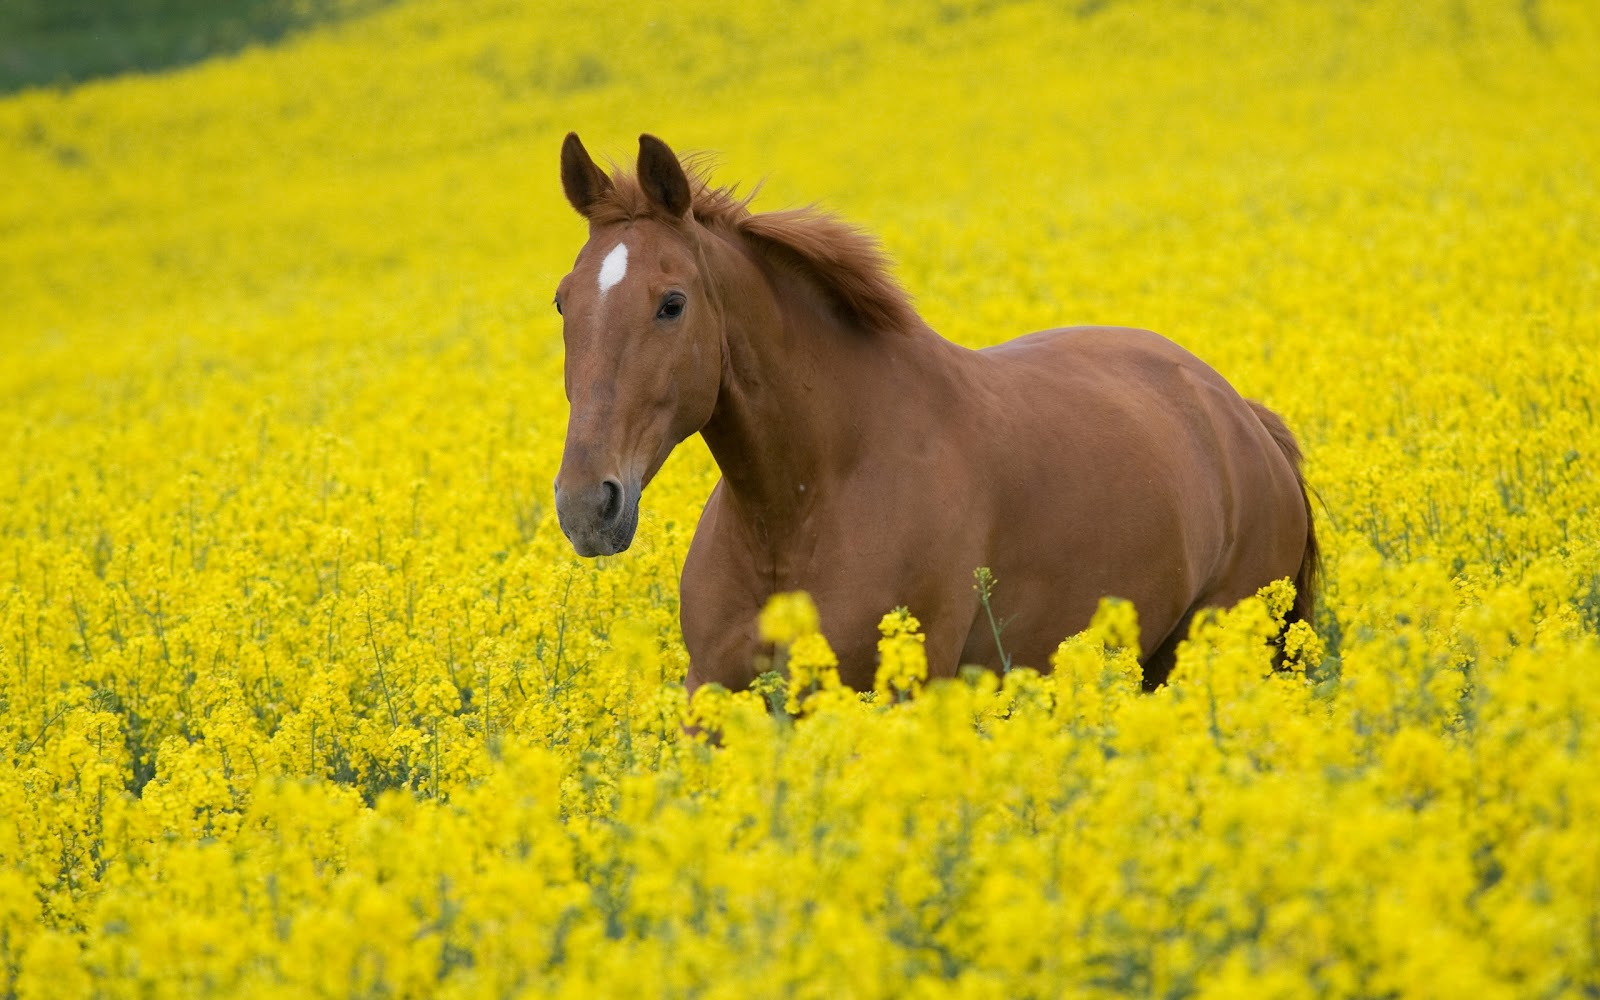 Simple   Wallpaper Horse Ultra Hd - MixoPlanet+%2810%29  Image_628821.jpg